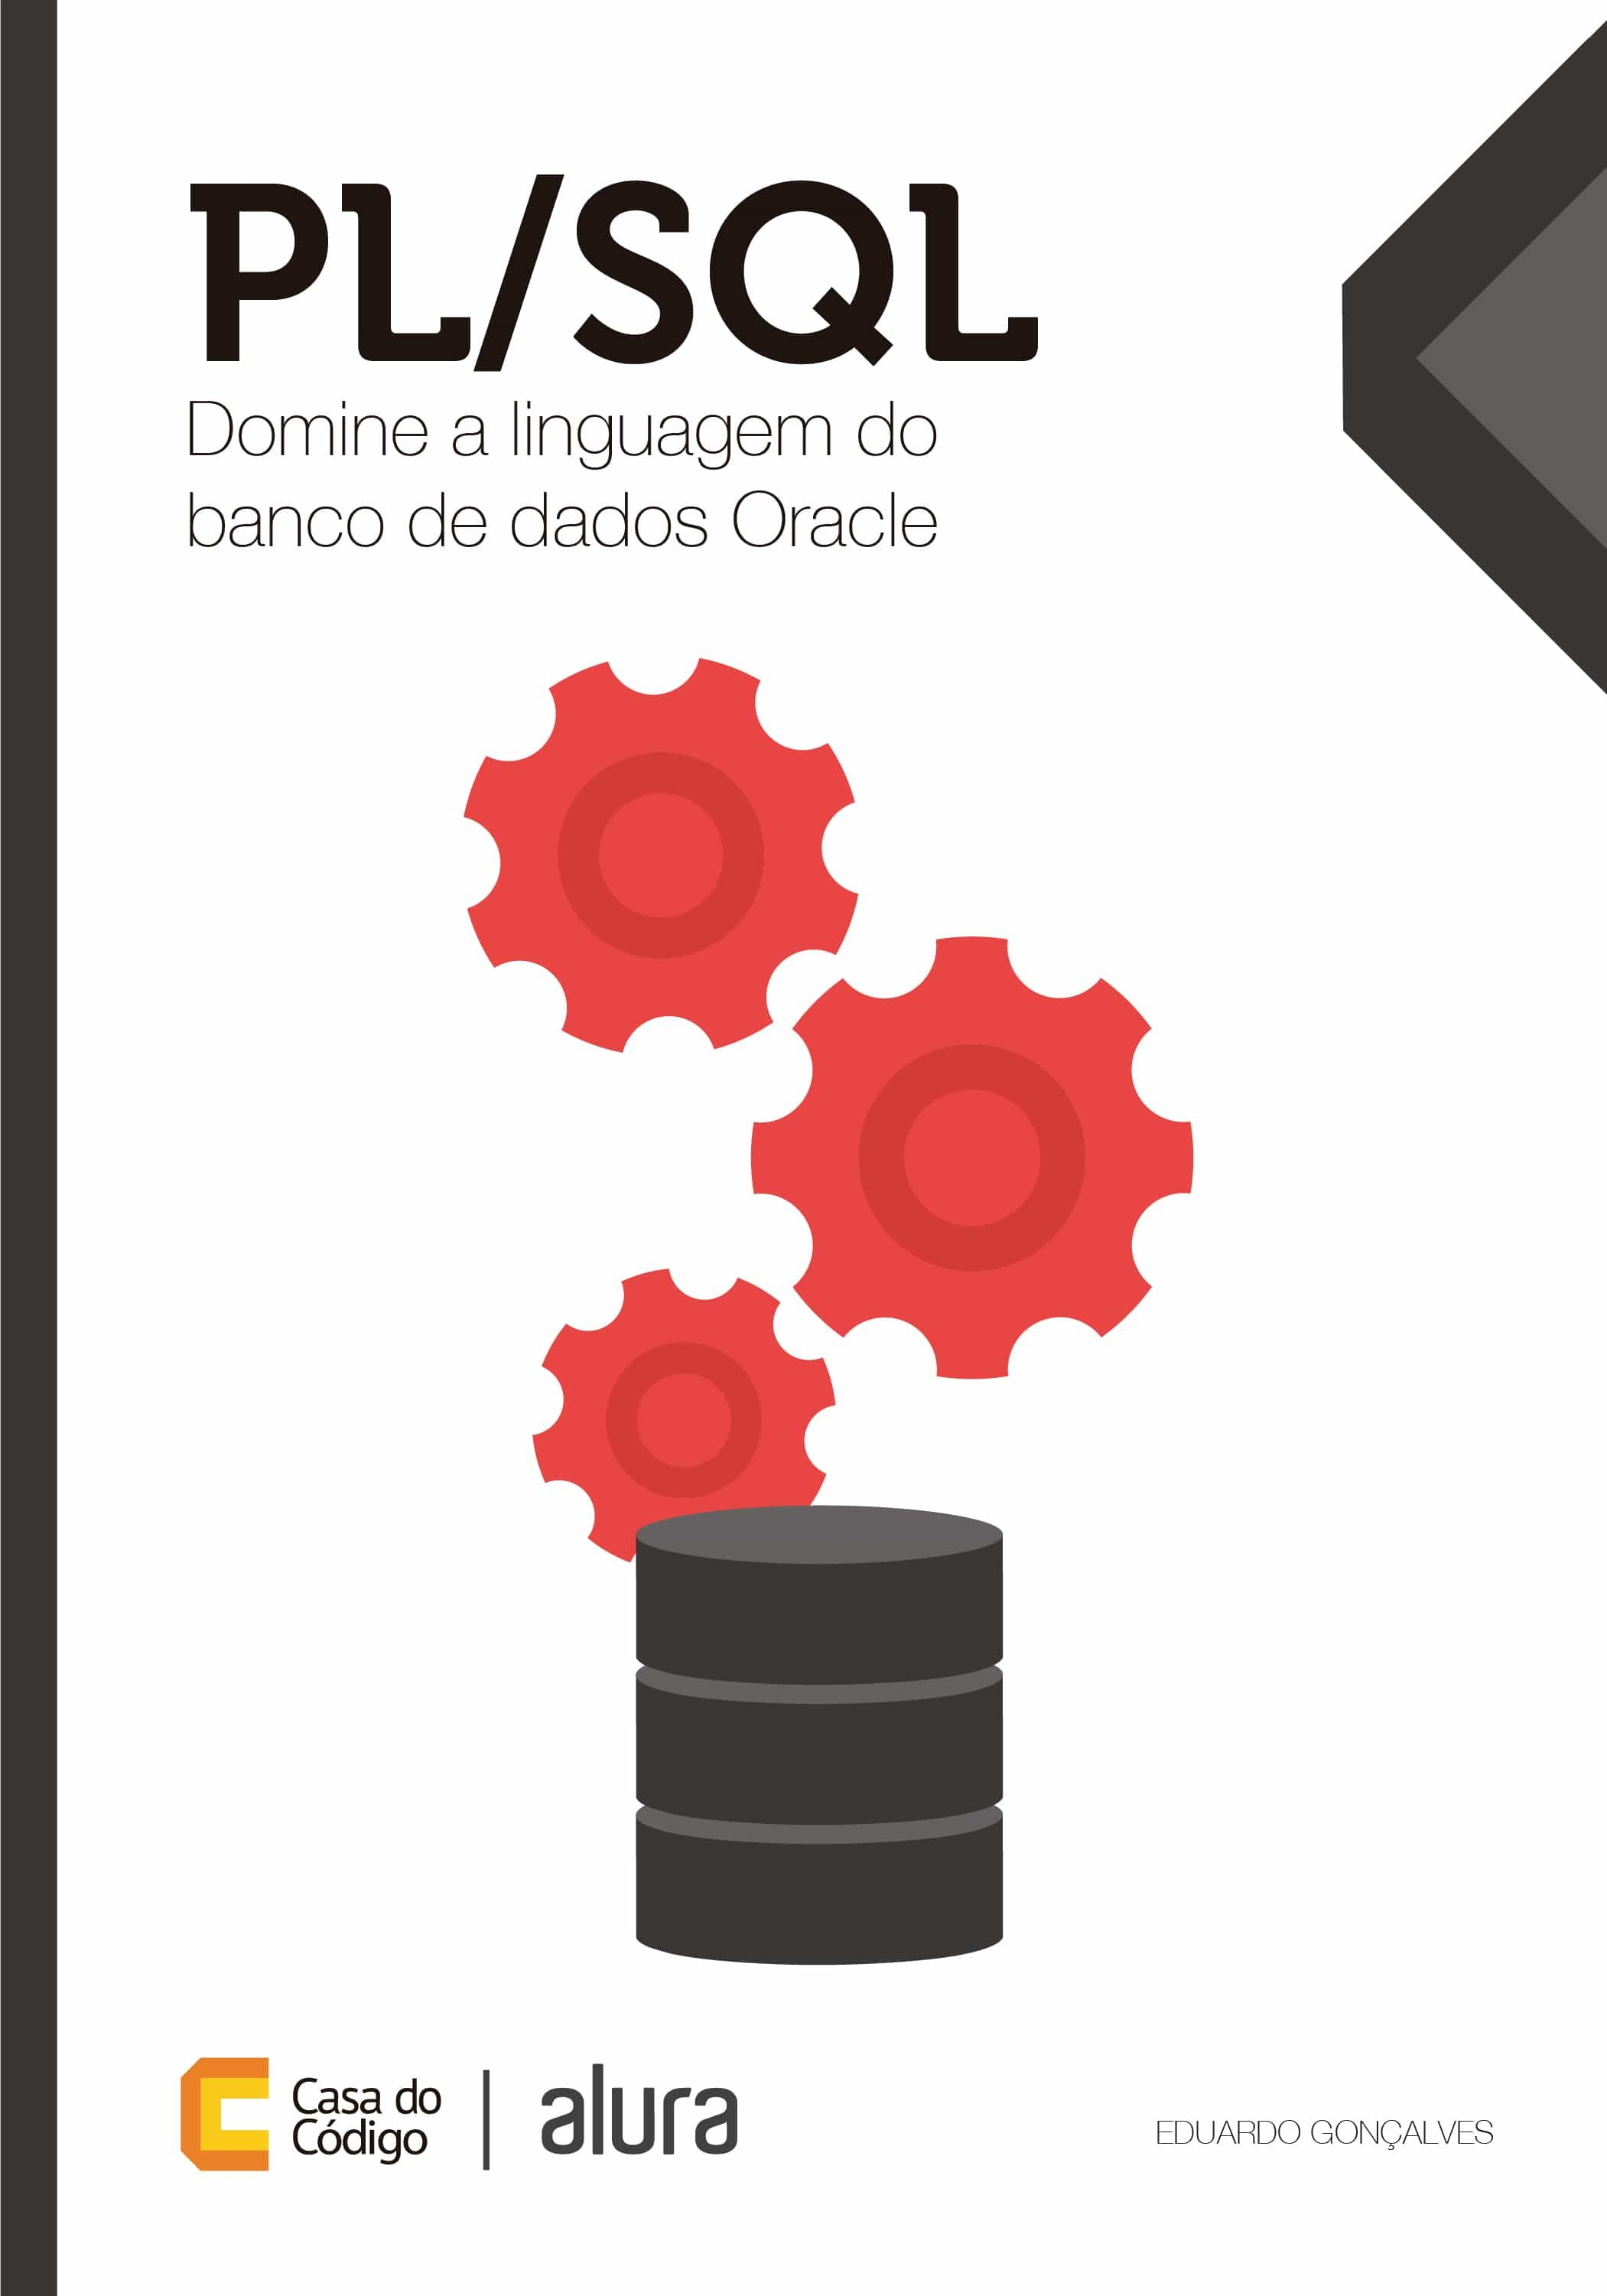 PL/SQL EBOOK | EDUARDO GONÇALVES | Descargar libro PDF o EPUB ...